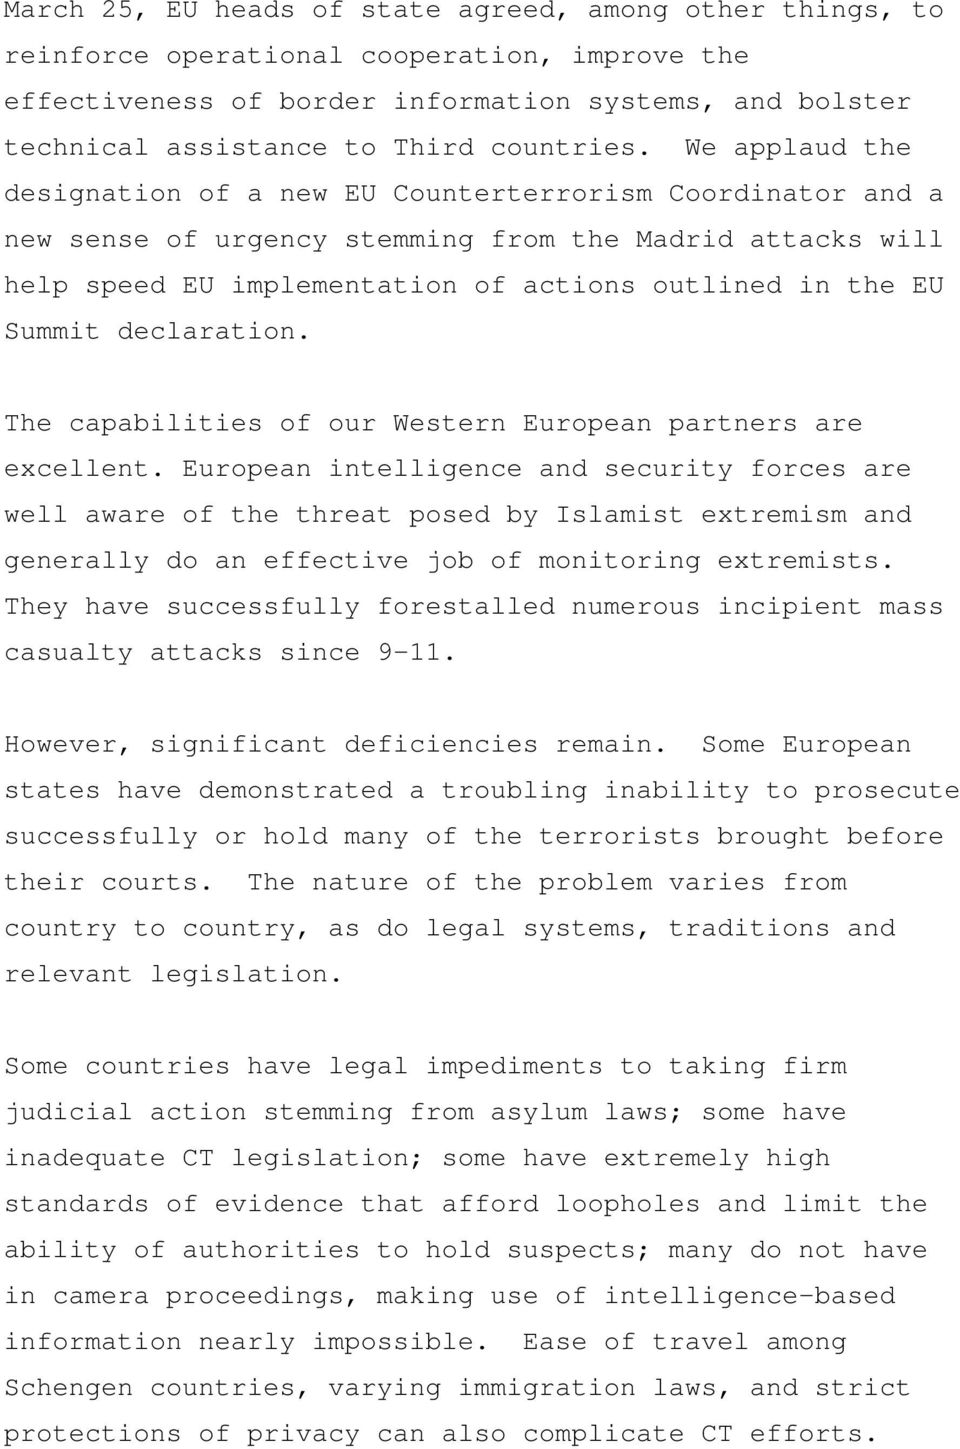 We applaud the designation of a new EU Counterterrorism Coordinator and a new sense of urgency stemming from the Madrid attacks will help speed EU implementation of actions outlined in the EU Summit